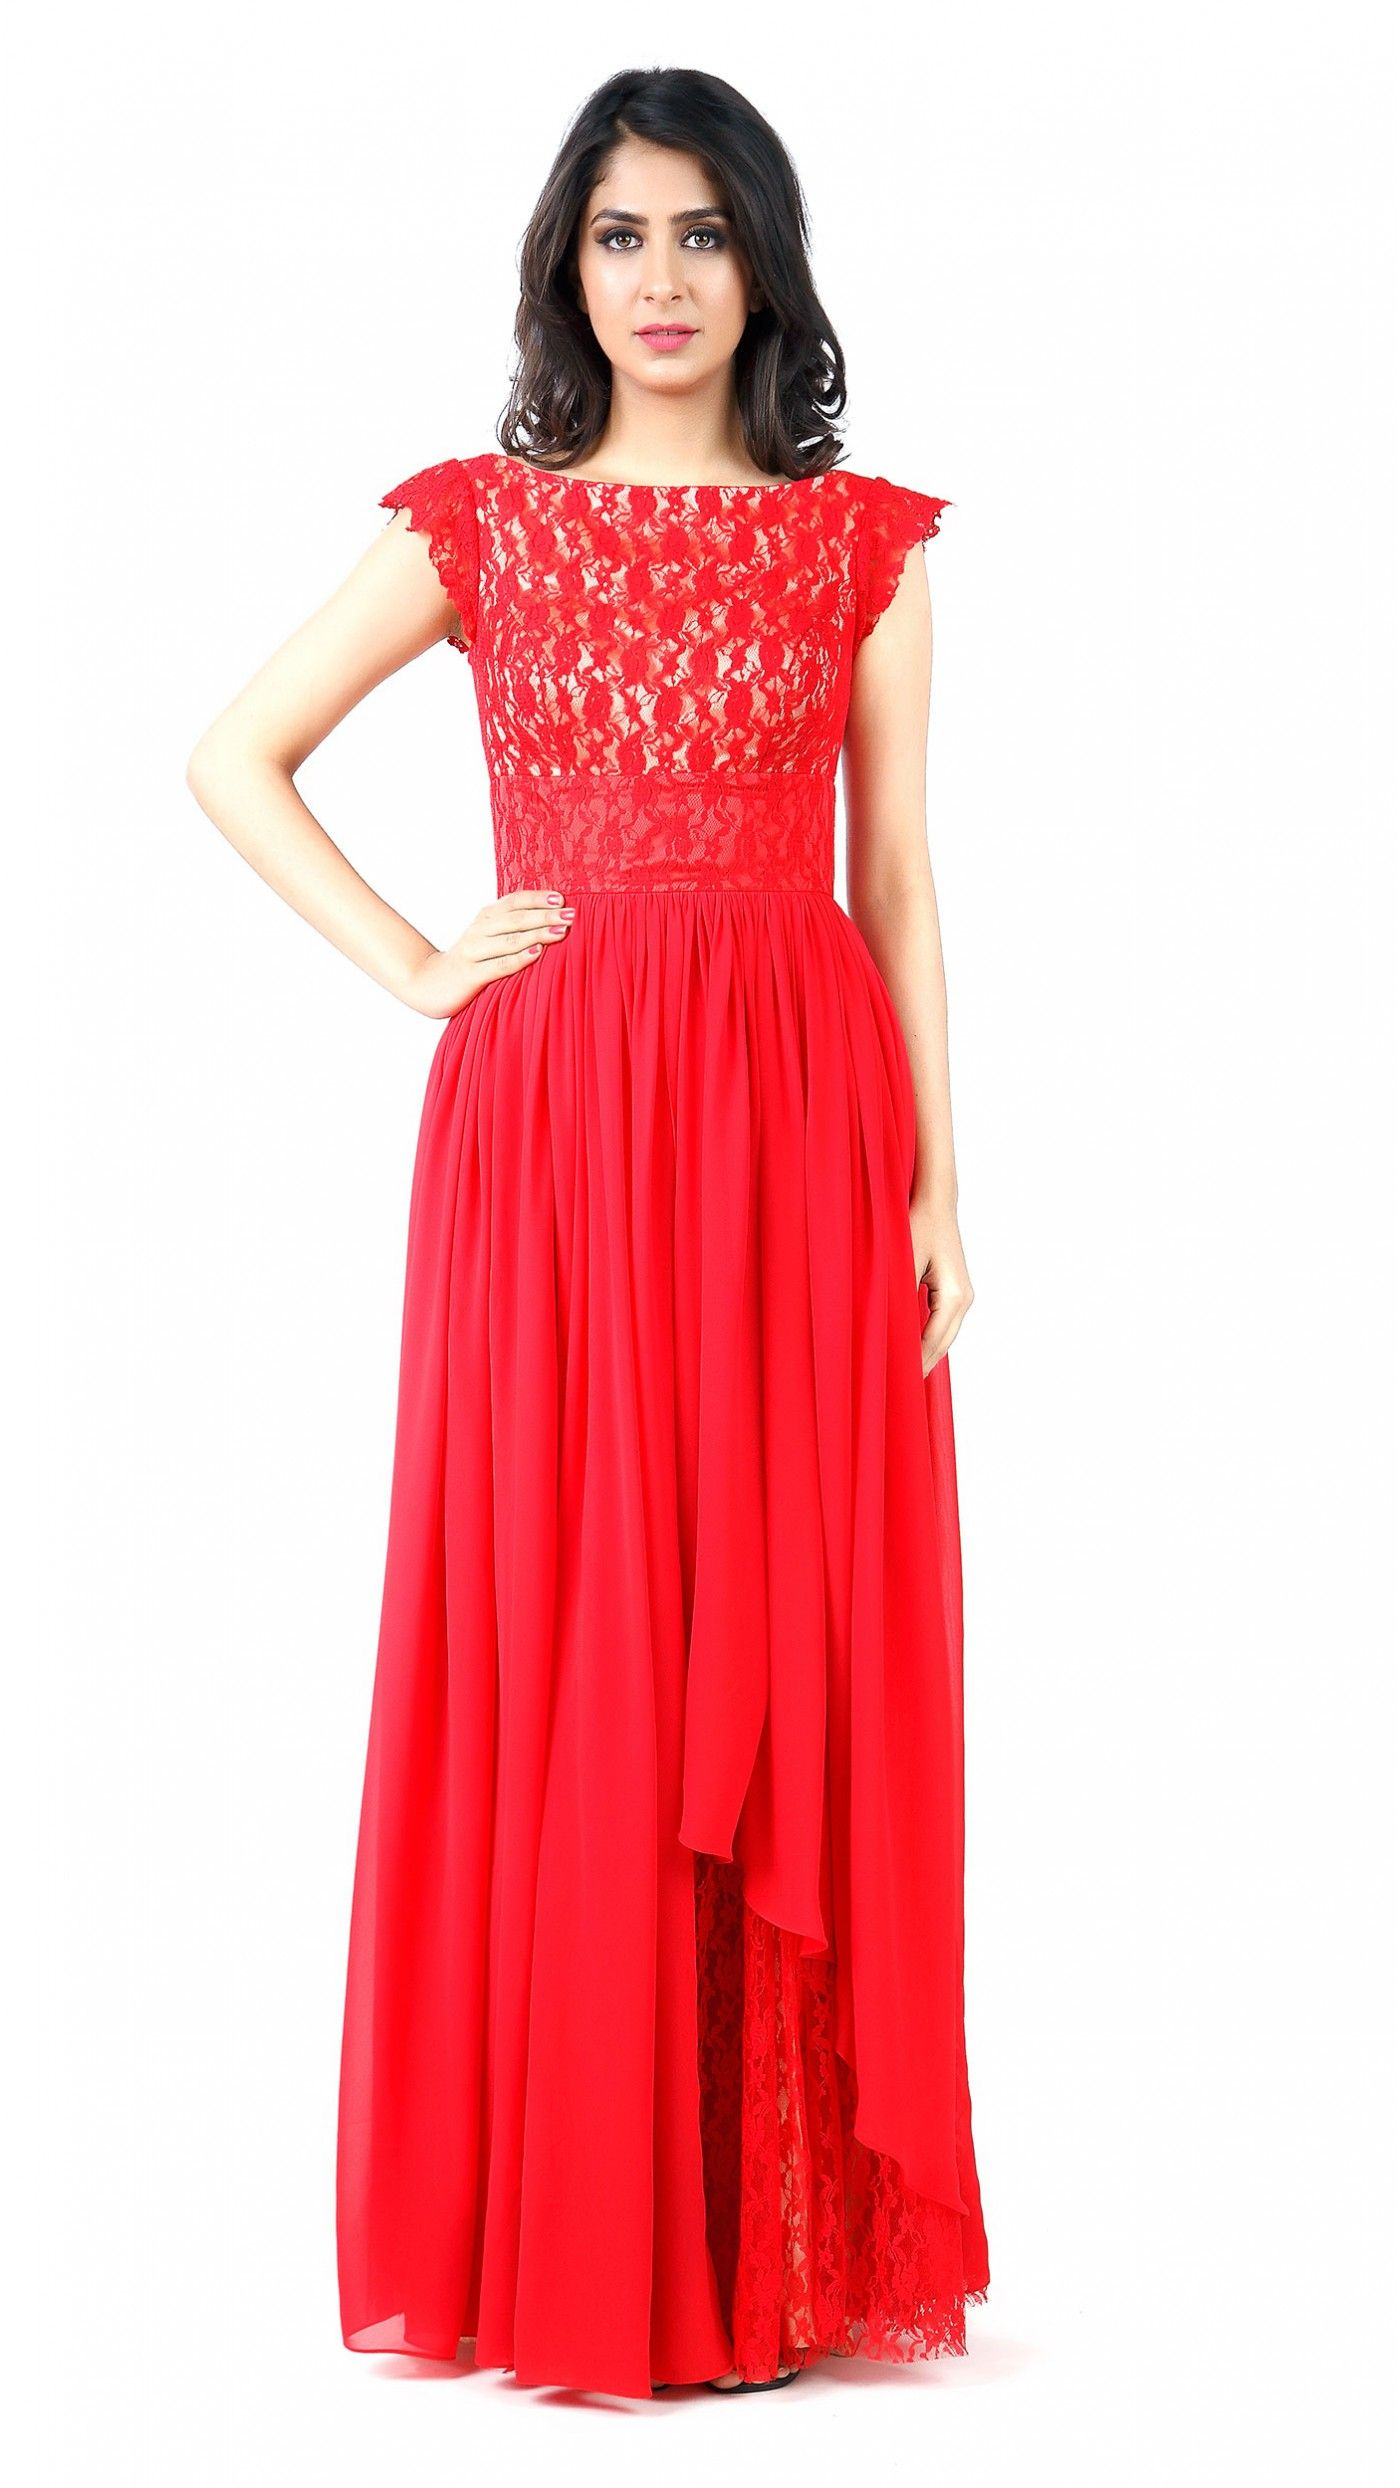 Red lace gown beauty pinterest red lace gown red lace and gowns